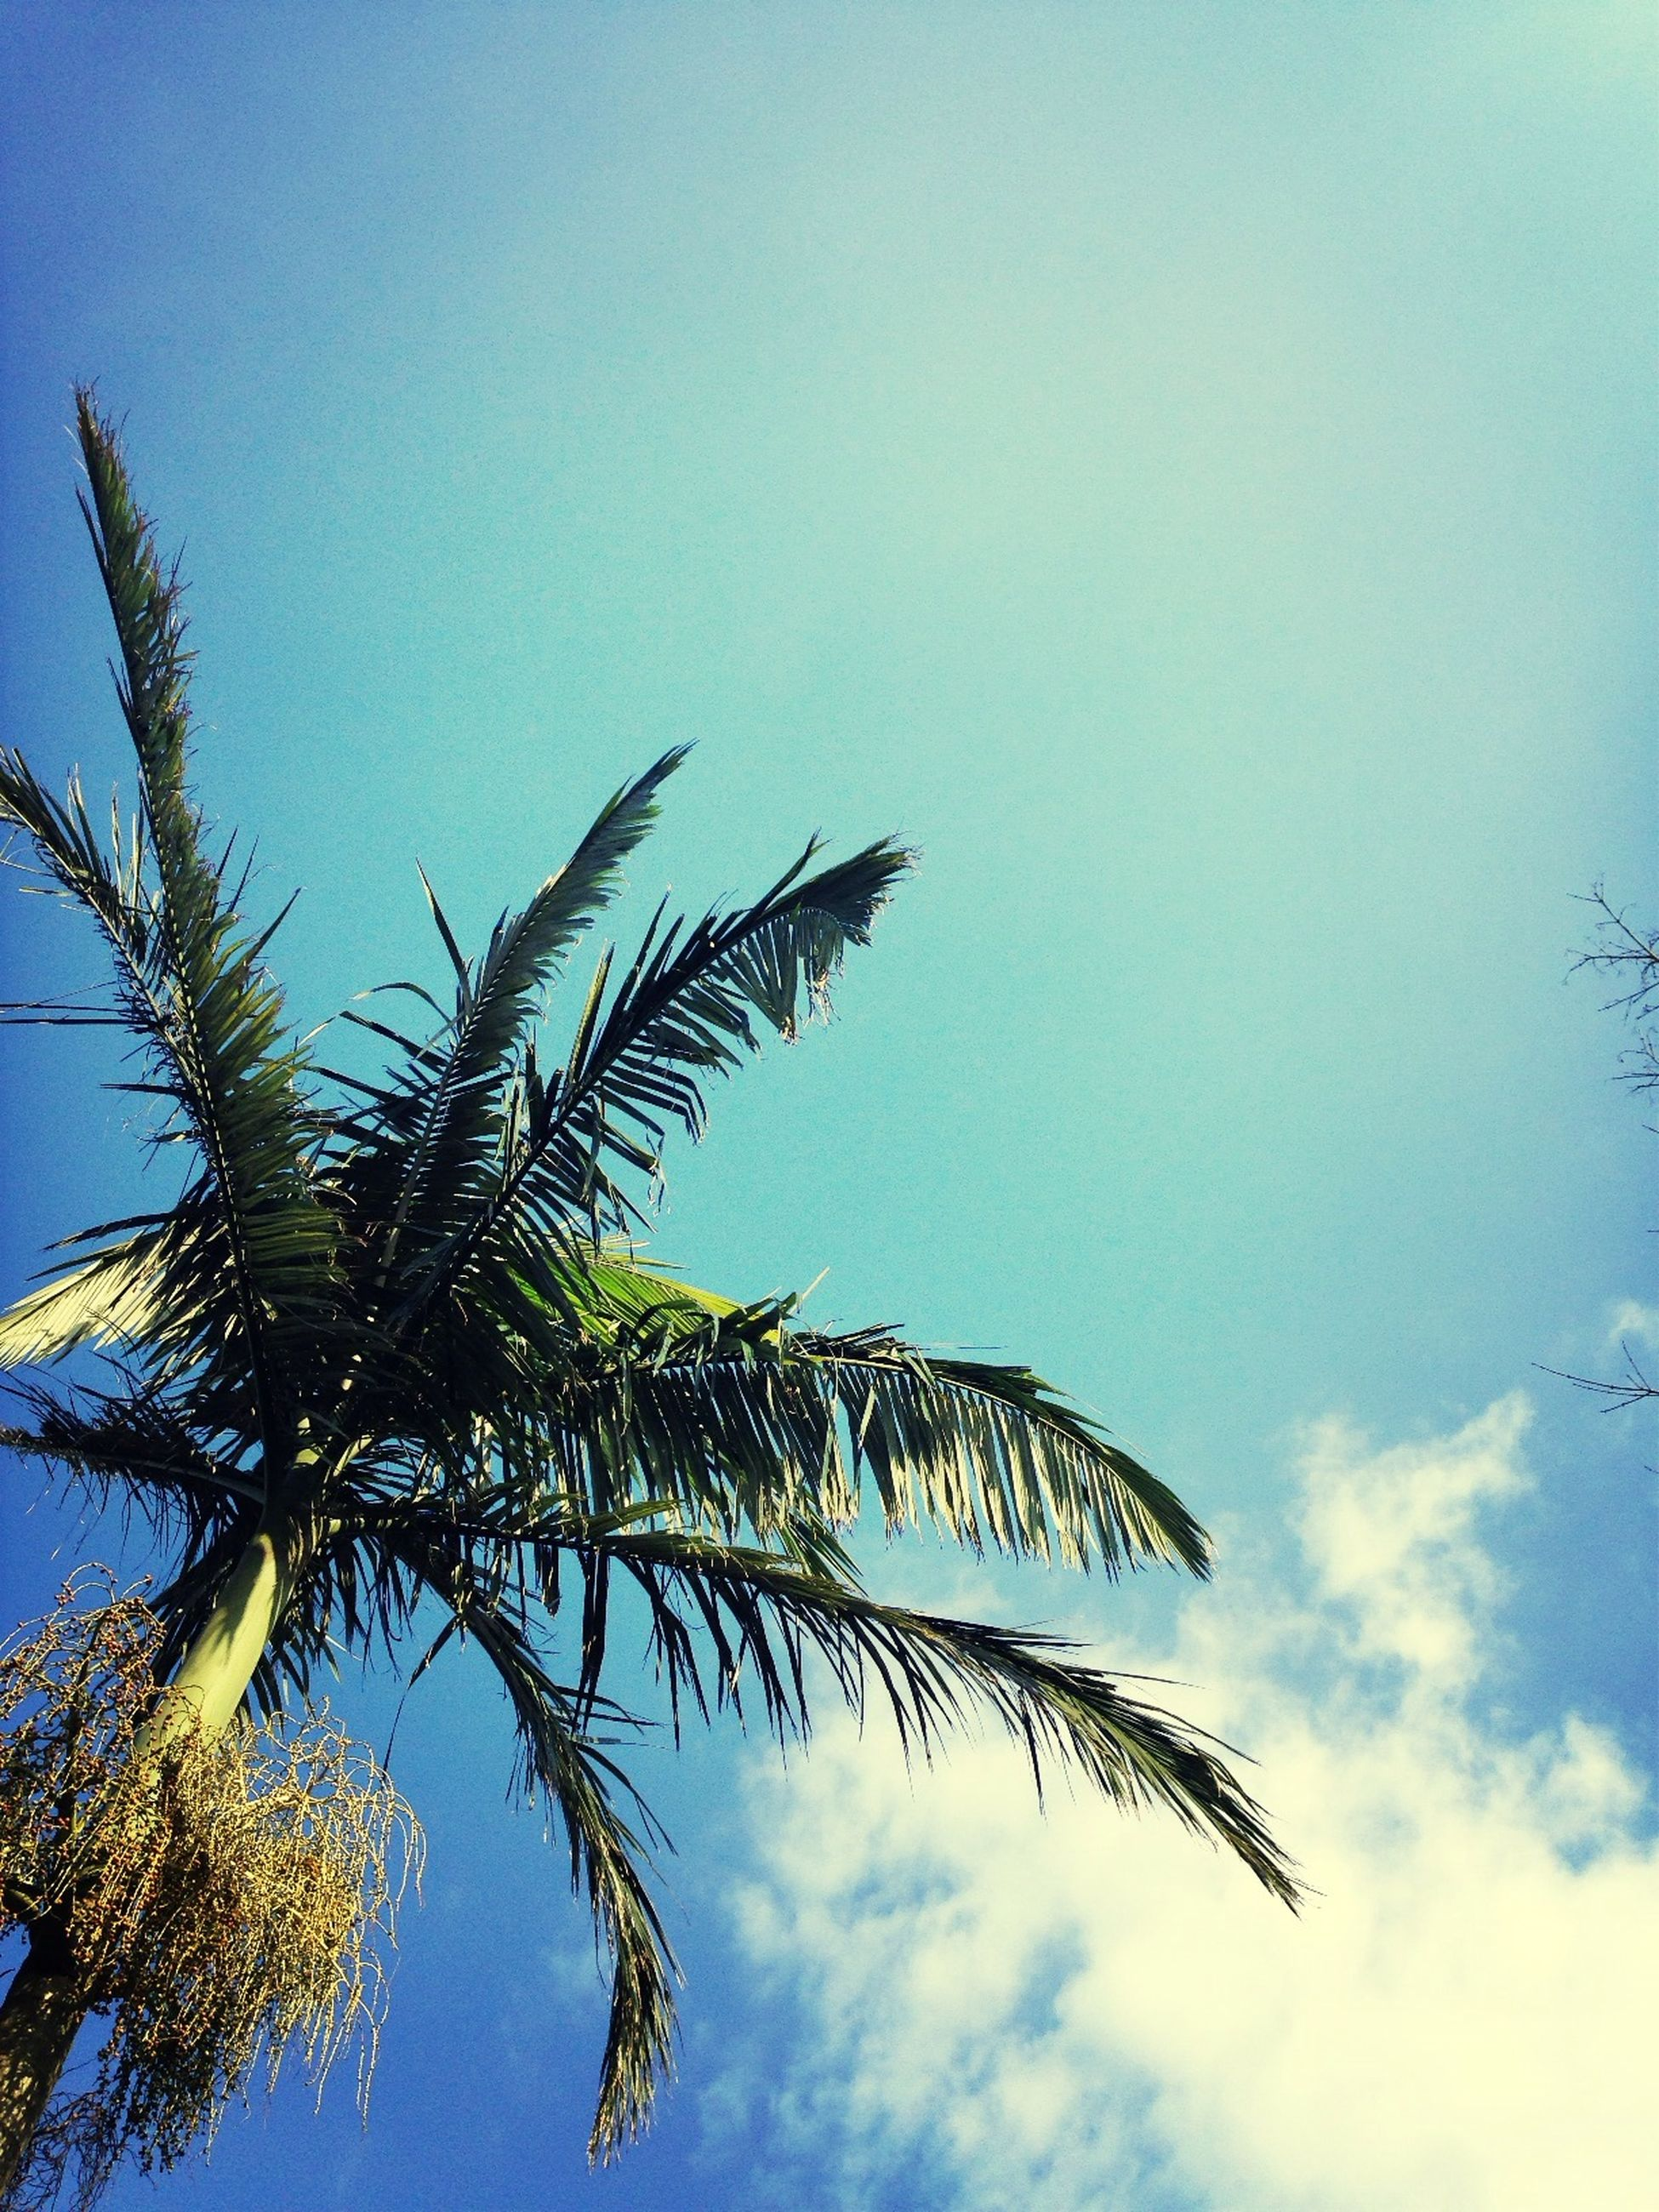 low angle view, growth, sky, blue, nature, tree, branch, tranquility, leaf, beauty in nature, plant, day, clear sky, stem, no people, outdoors, palm tree, growing, twig, high section